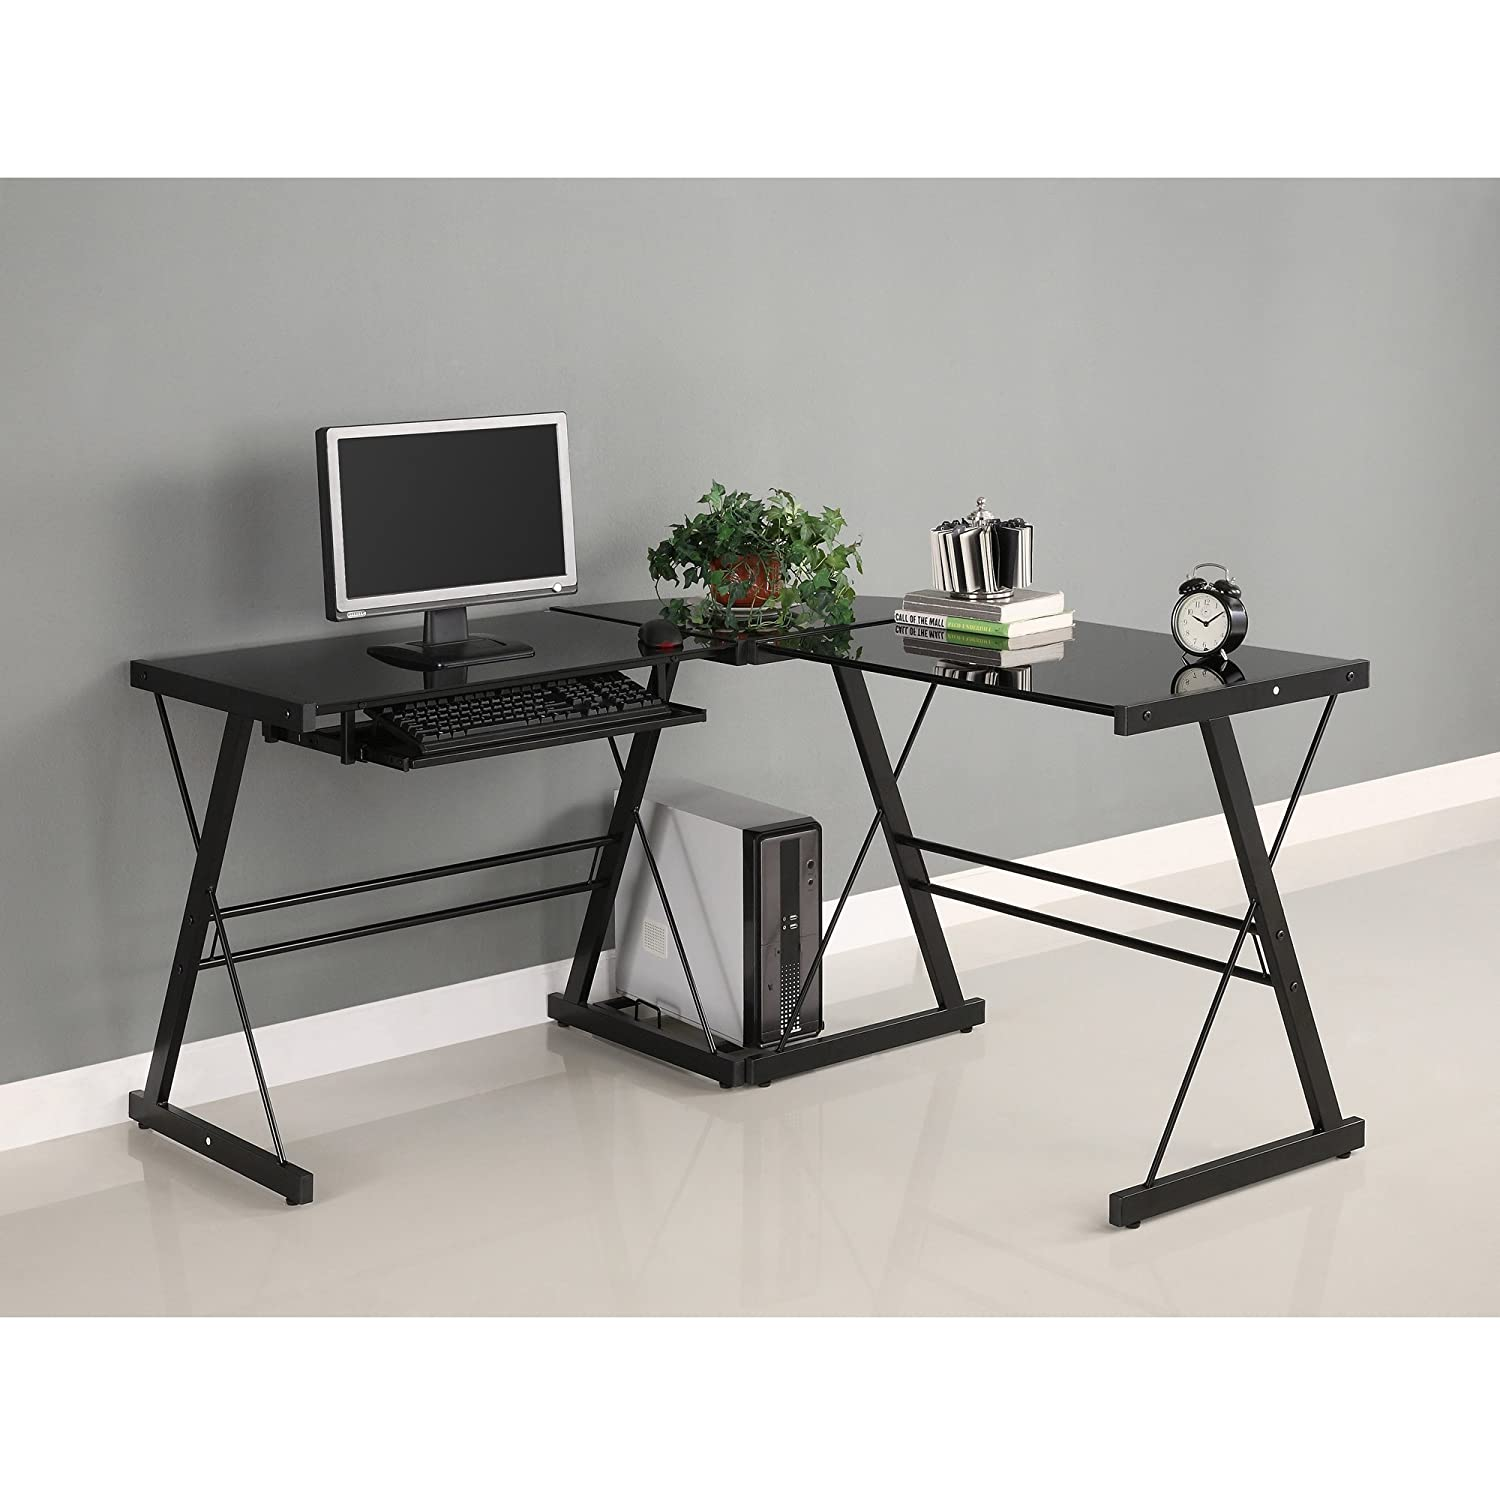 This gaming station computer desk look stunning and offers very good value for money.